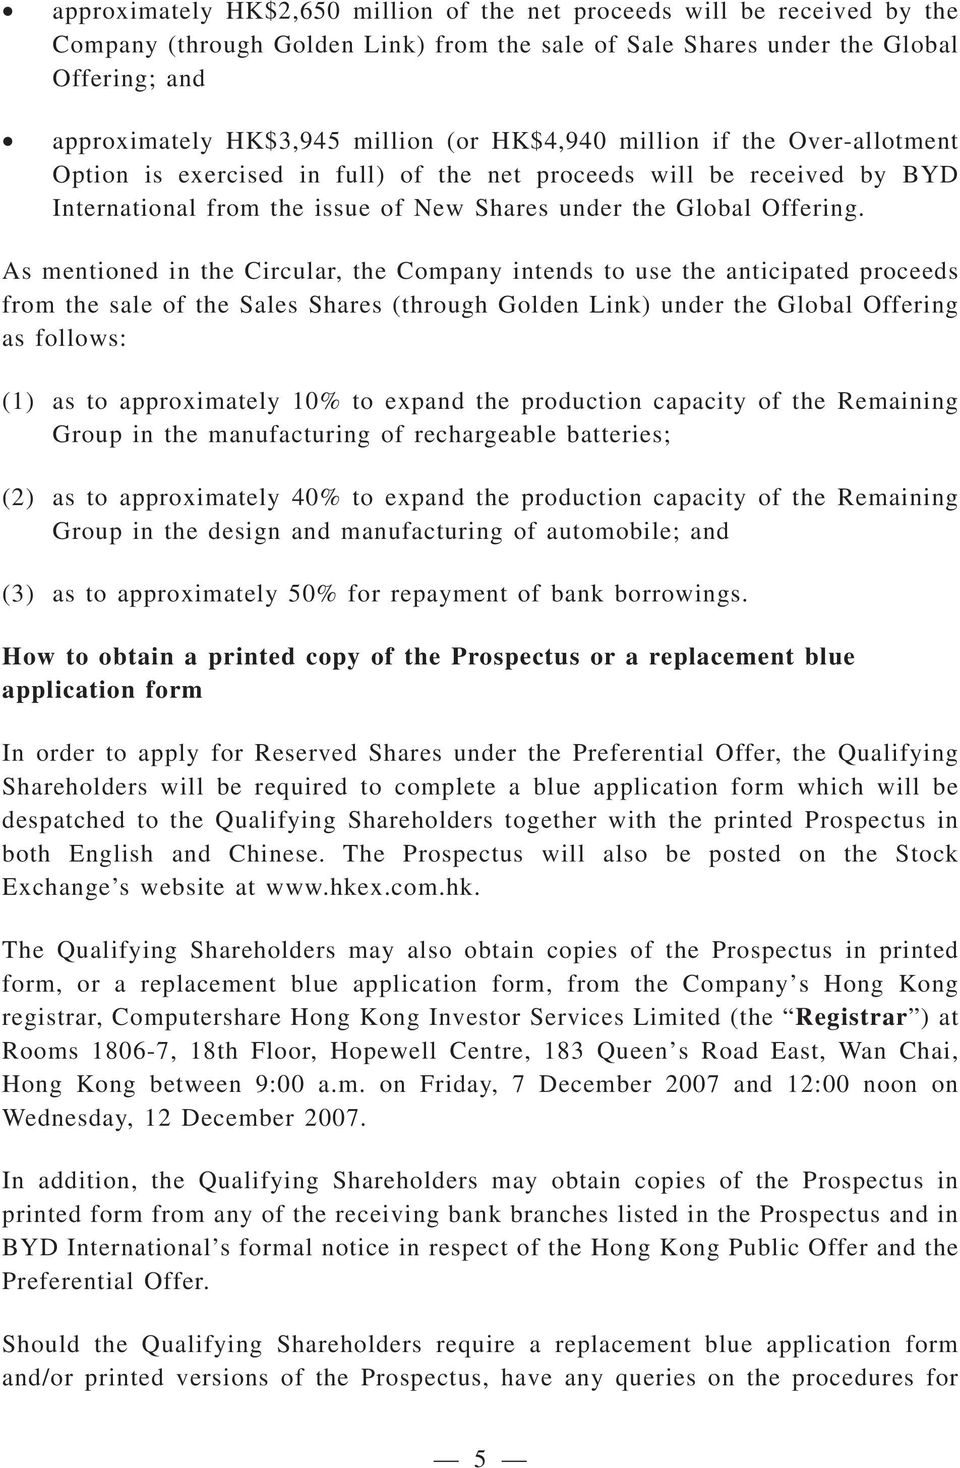 As mentioned in the Circular, the Company intends to use the anticipated proceeds from the sale of the Sales Shares (through Golden Link) under the Global Offering as follows: (1) as to approximately